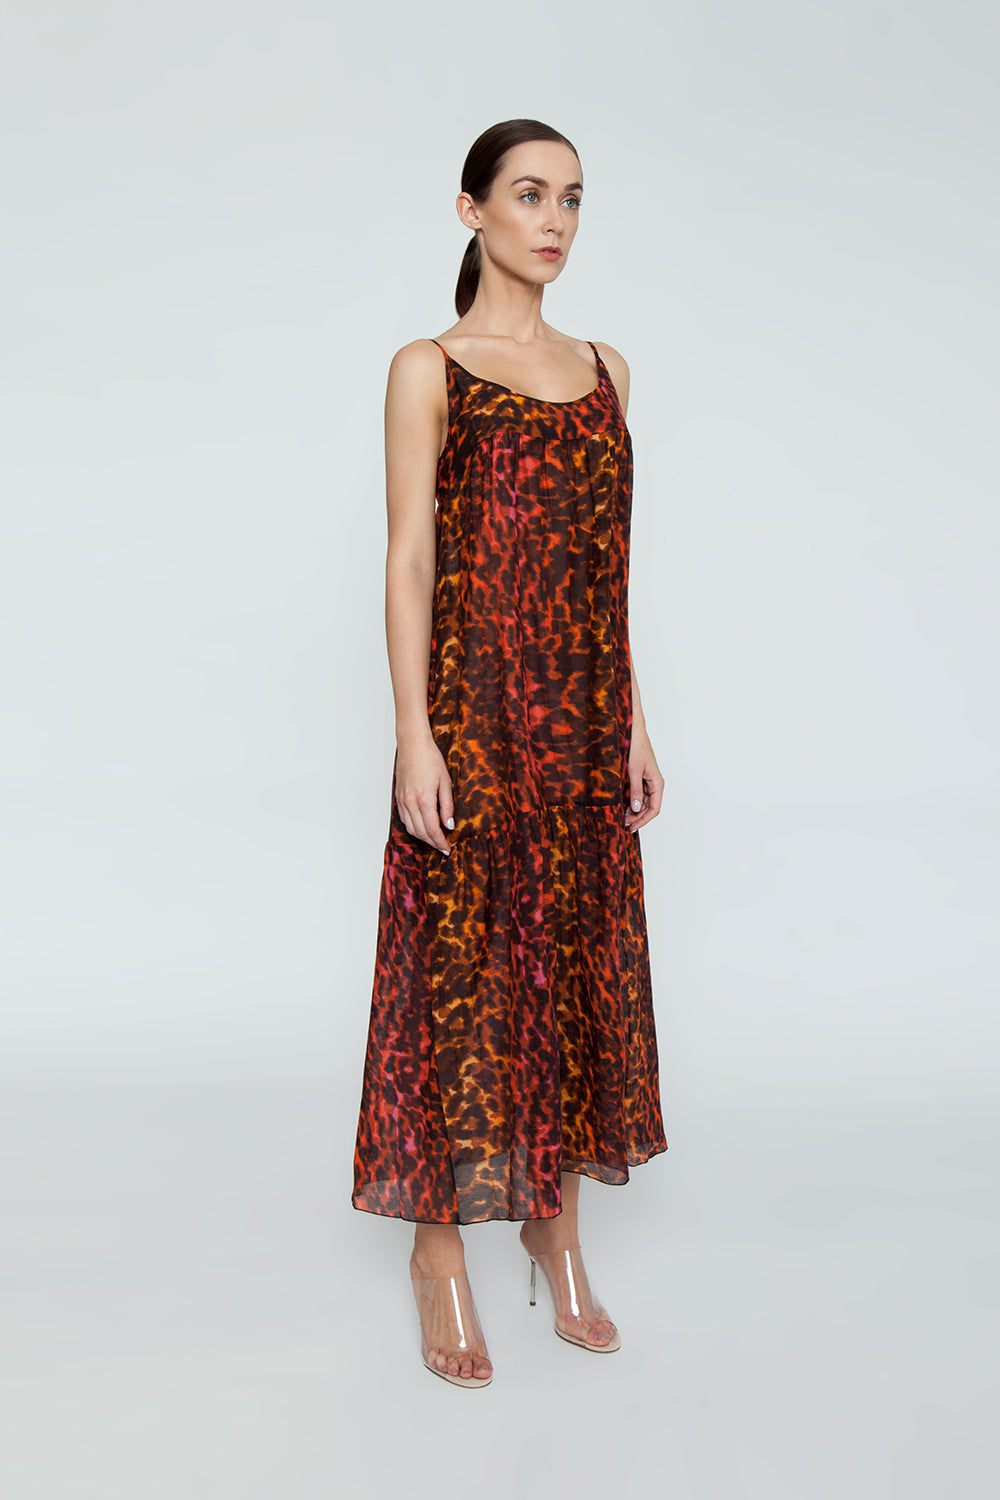 STELLA MCCARTNEY Ballet Spaghetti Strap Cover-Up Maxi Dress - Multicolor Camouflage Print Dress   Multicolor Camouflage Print  Stella McCartney Maxi Dress - Multicolor Camouflage Print Features:  Maxi dress  Scoop neckline Thin straps Ruffle tier detail  Side View